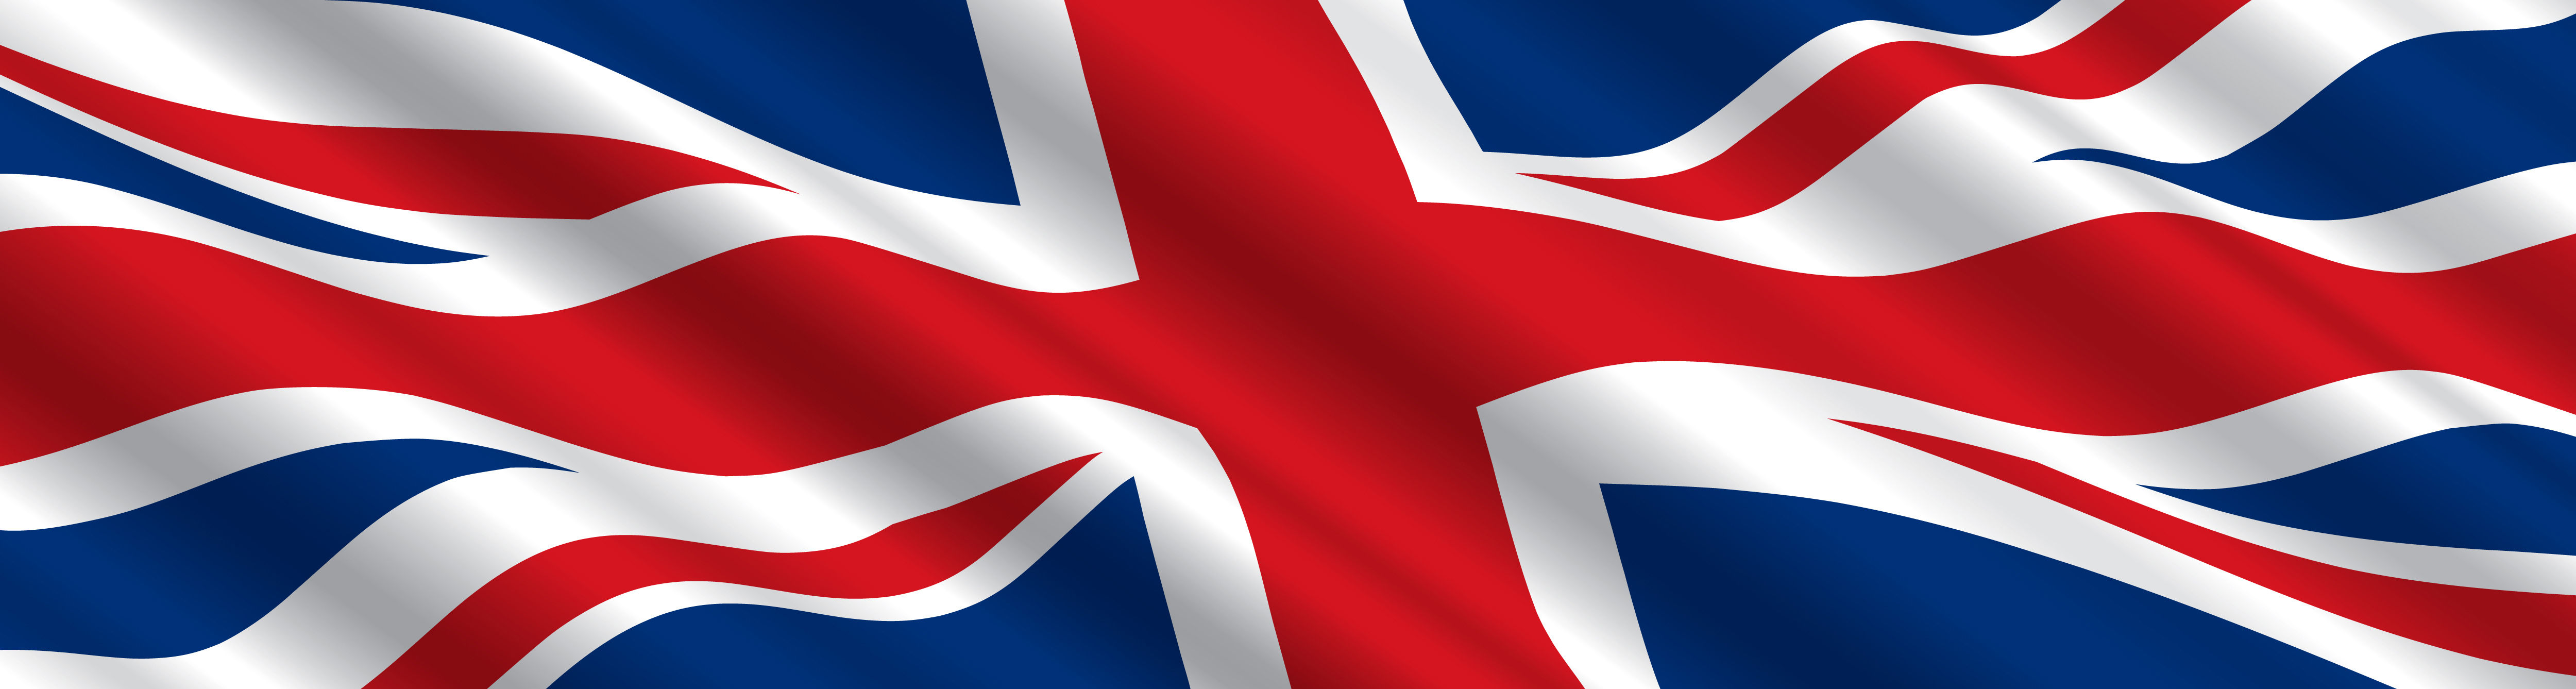 union jack, uk, flag, United Kingdom